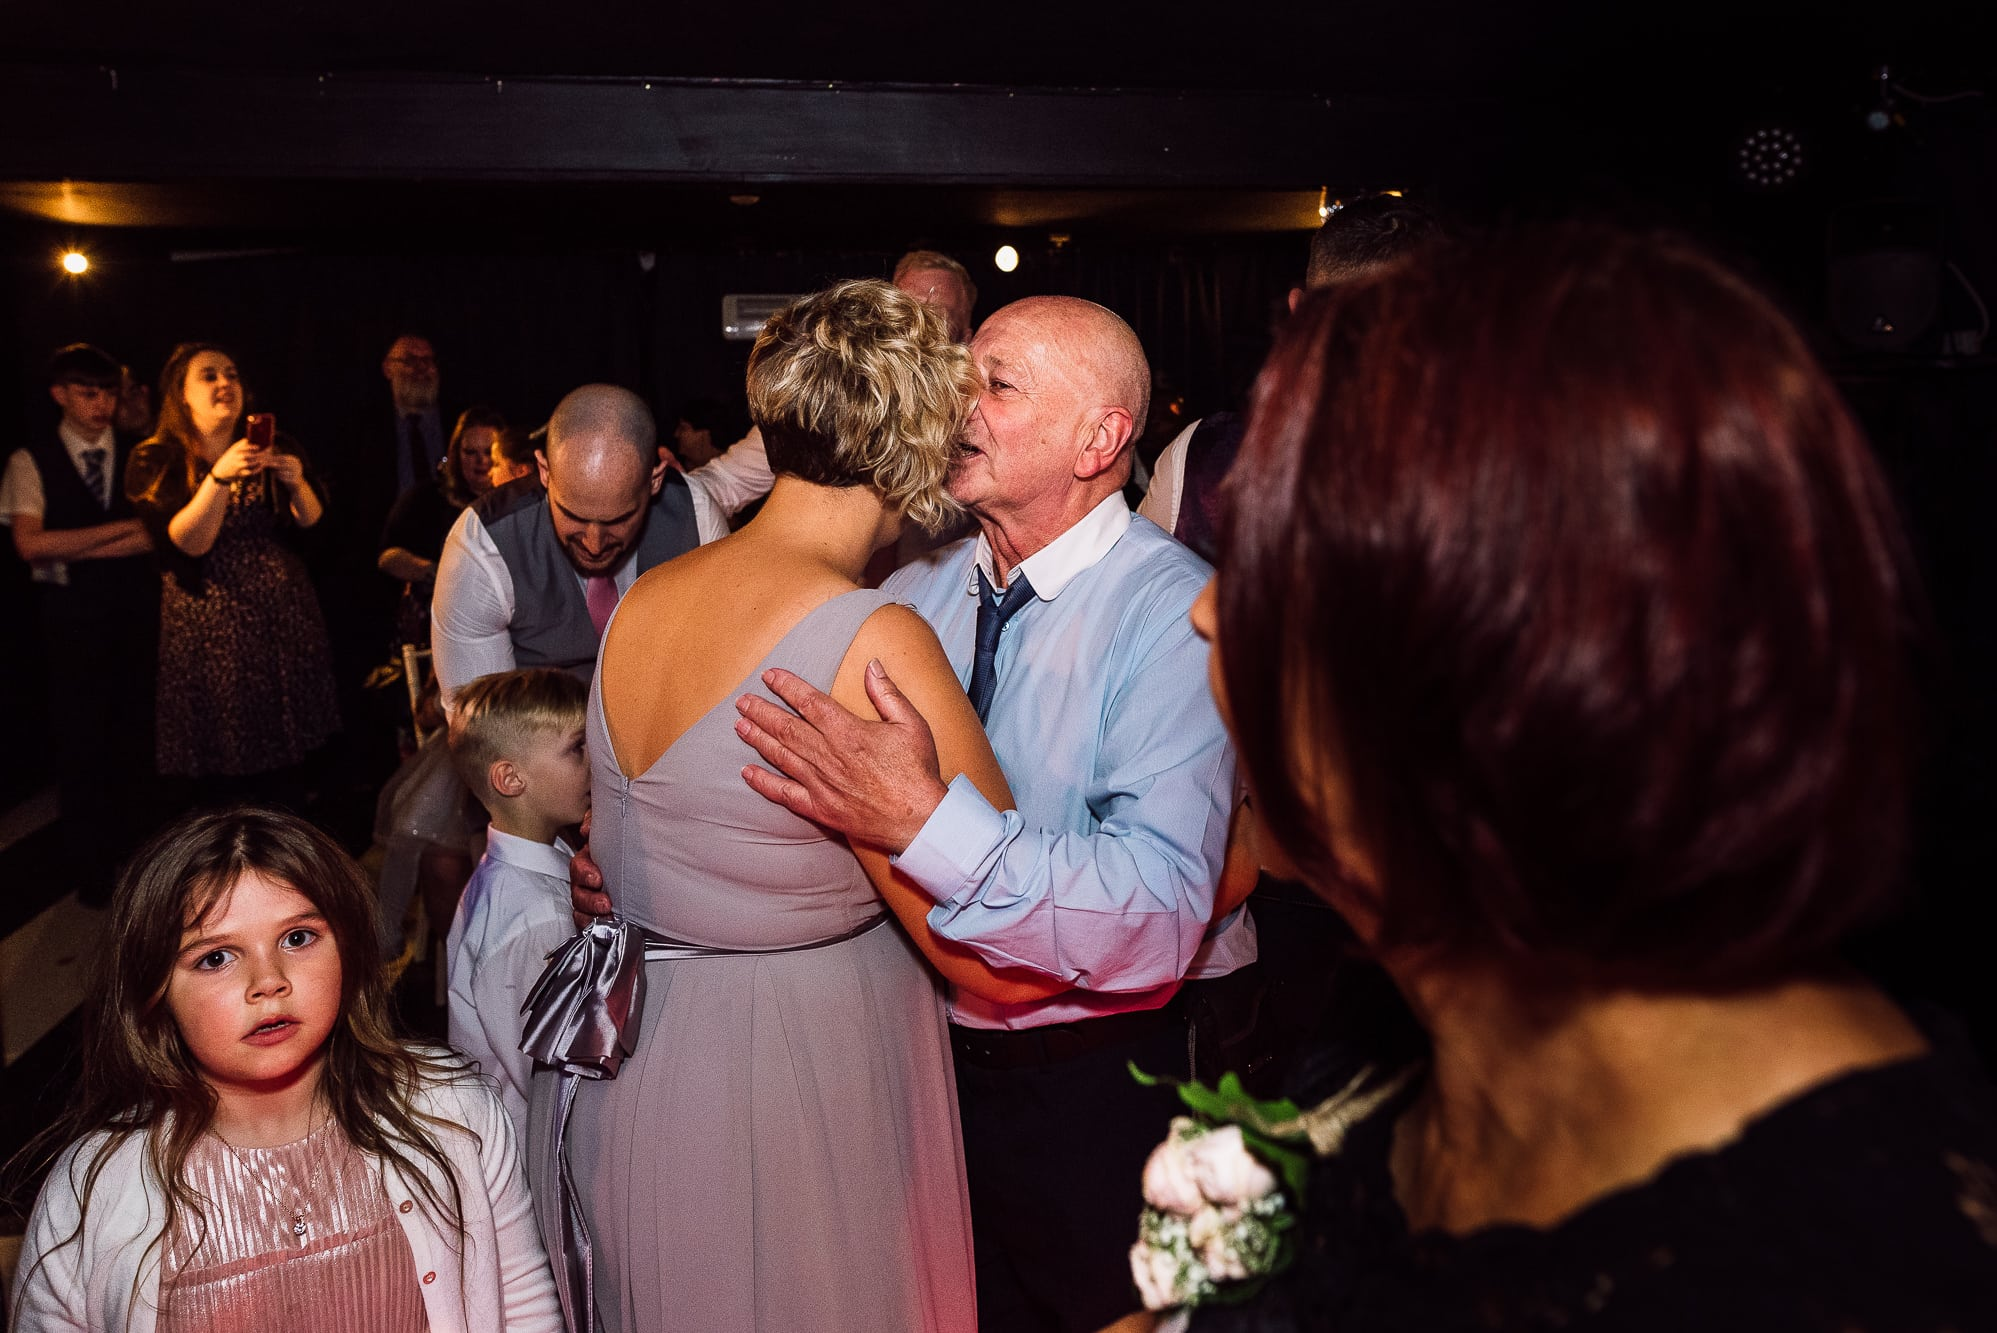 Guests dancing at Hilltop Country House